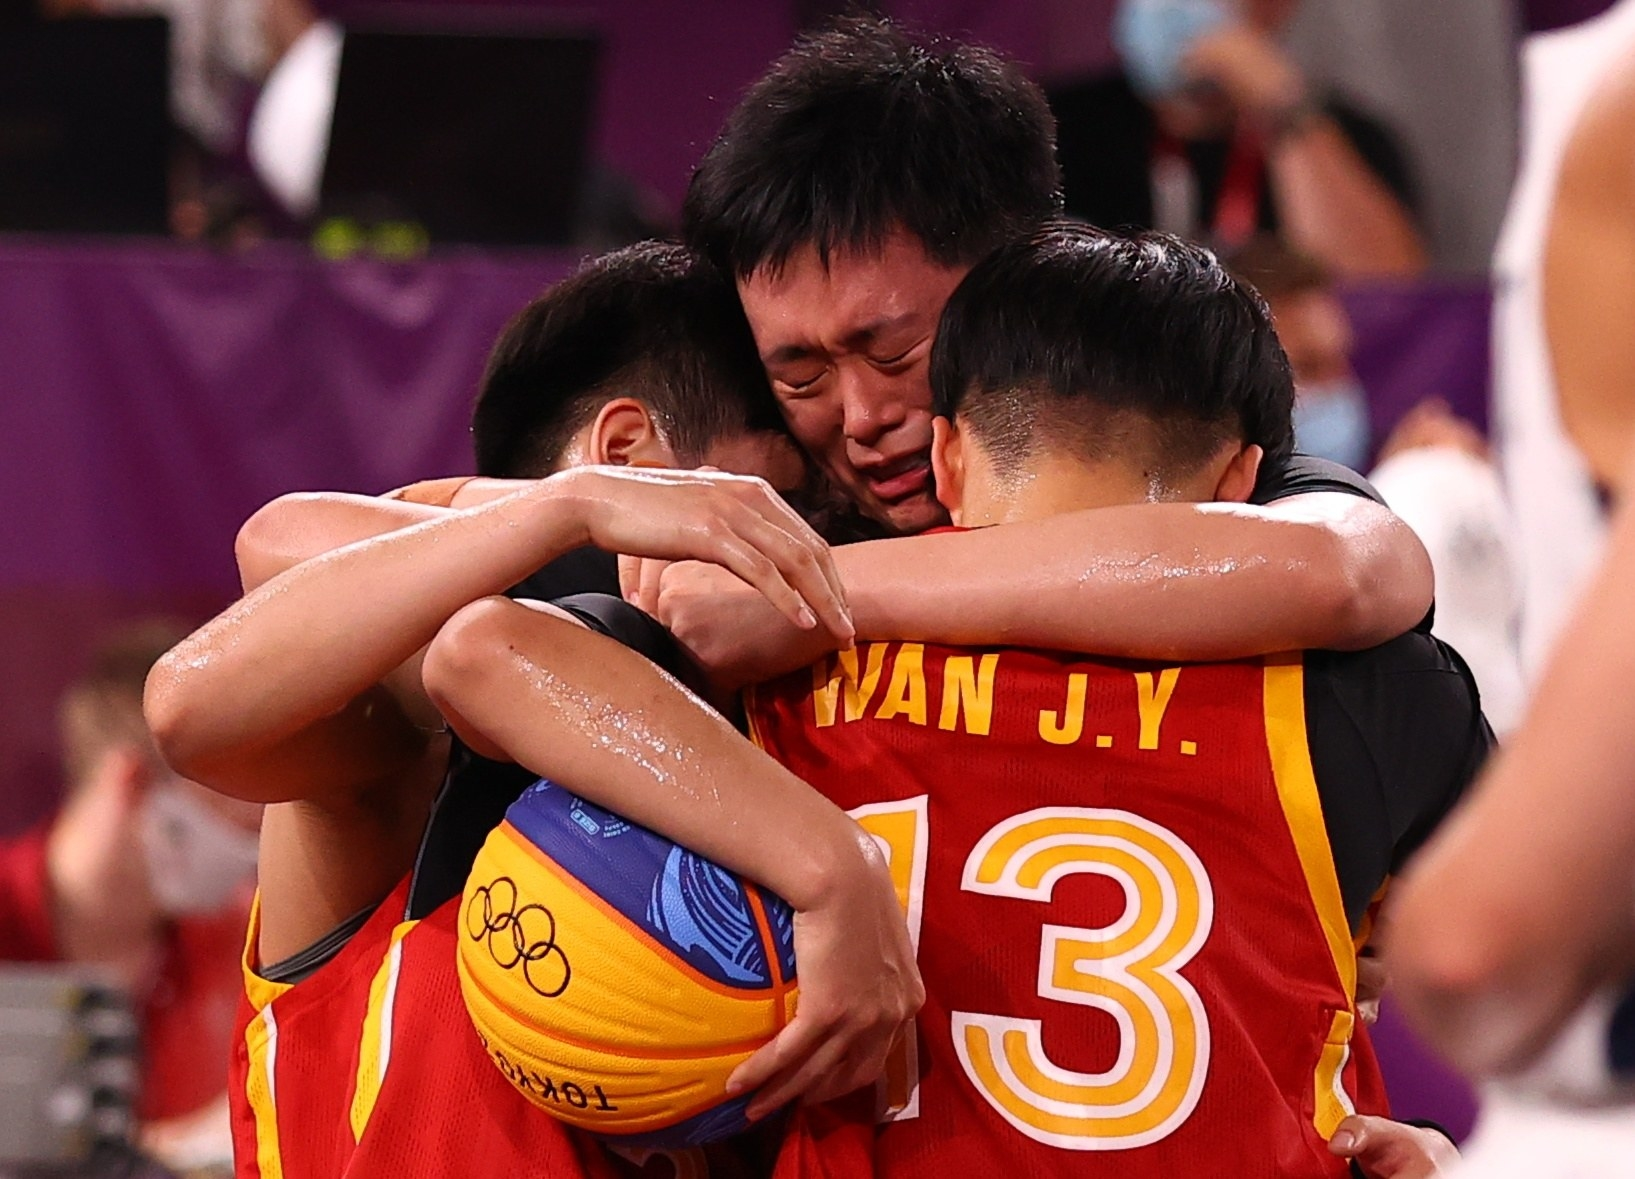 Chinese basketball players embrace and cry after competing in the Olympics